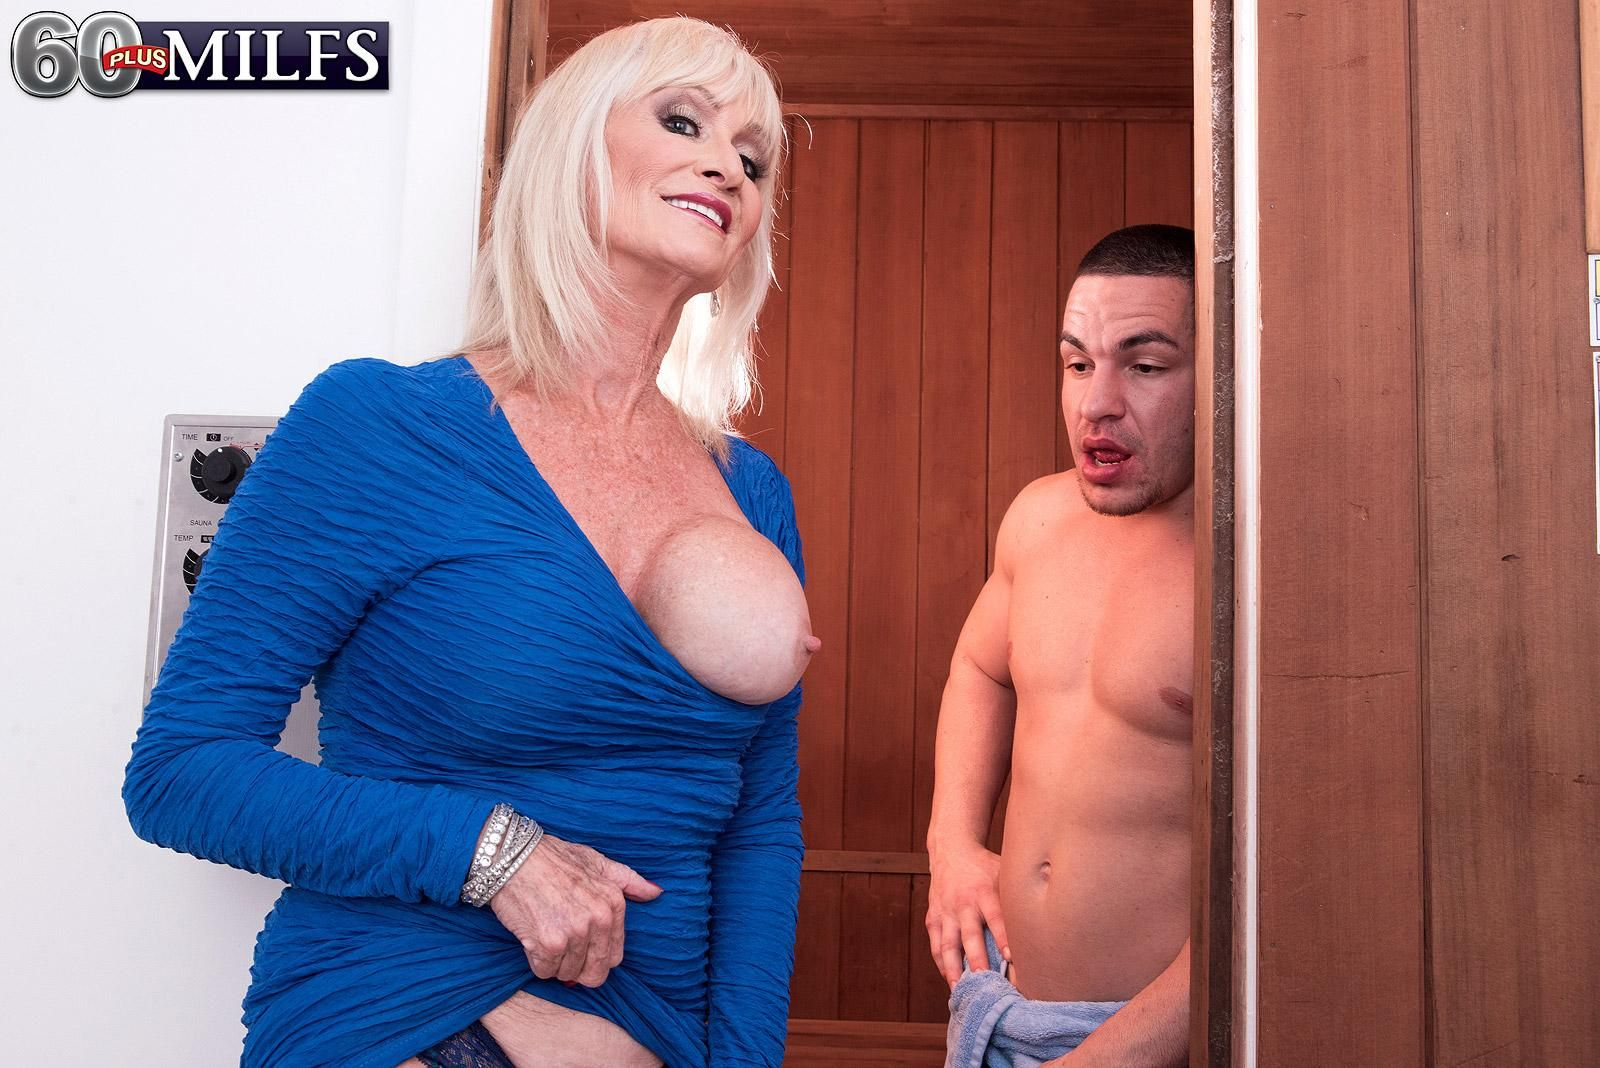 Mischievous 60 plus MILF Leah L'Amour seduces a younger stud in the sauna before delivering a fellatio